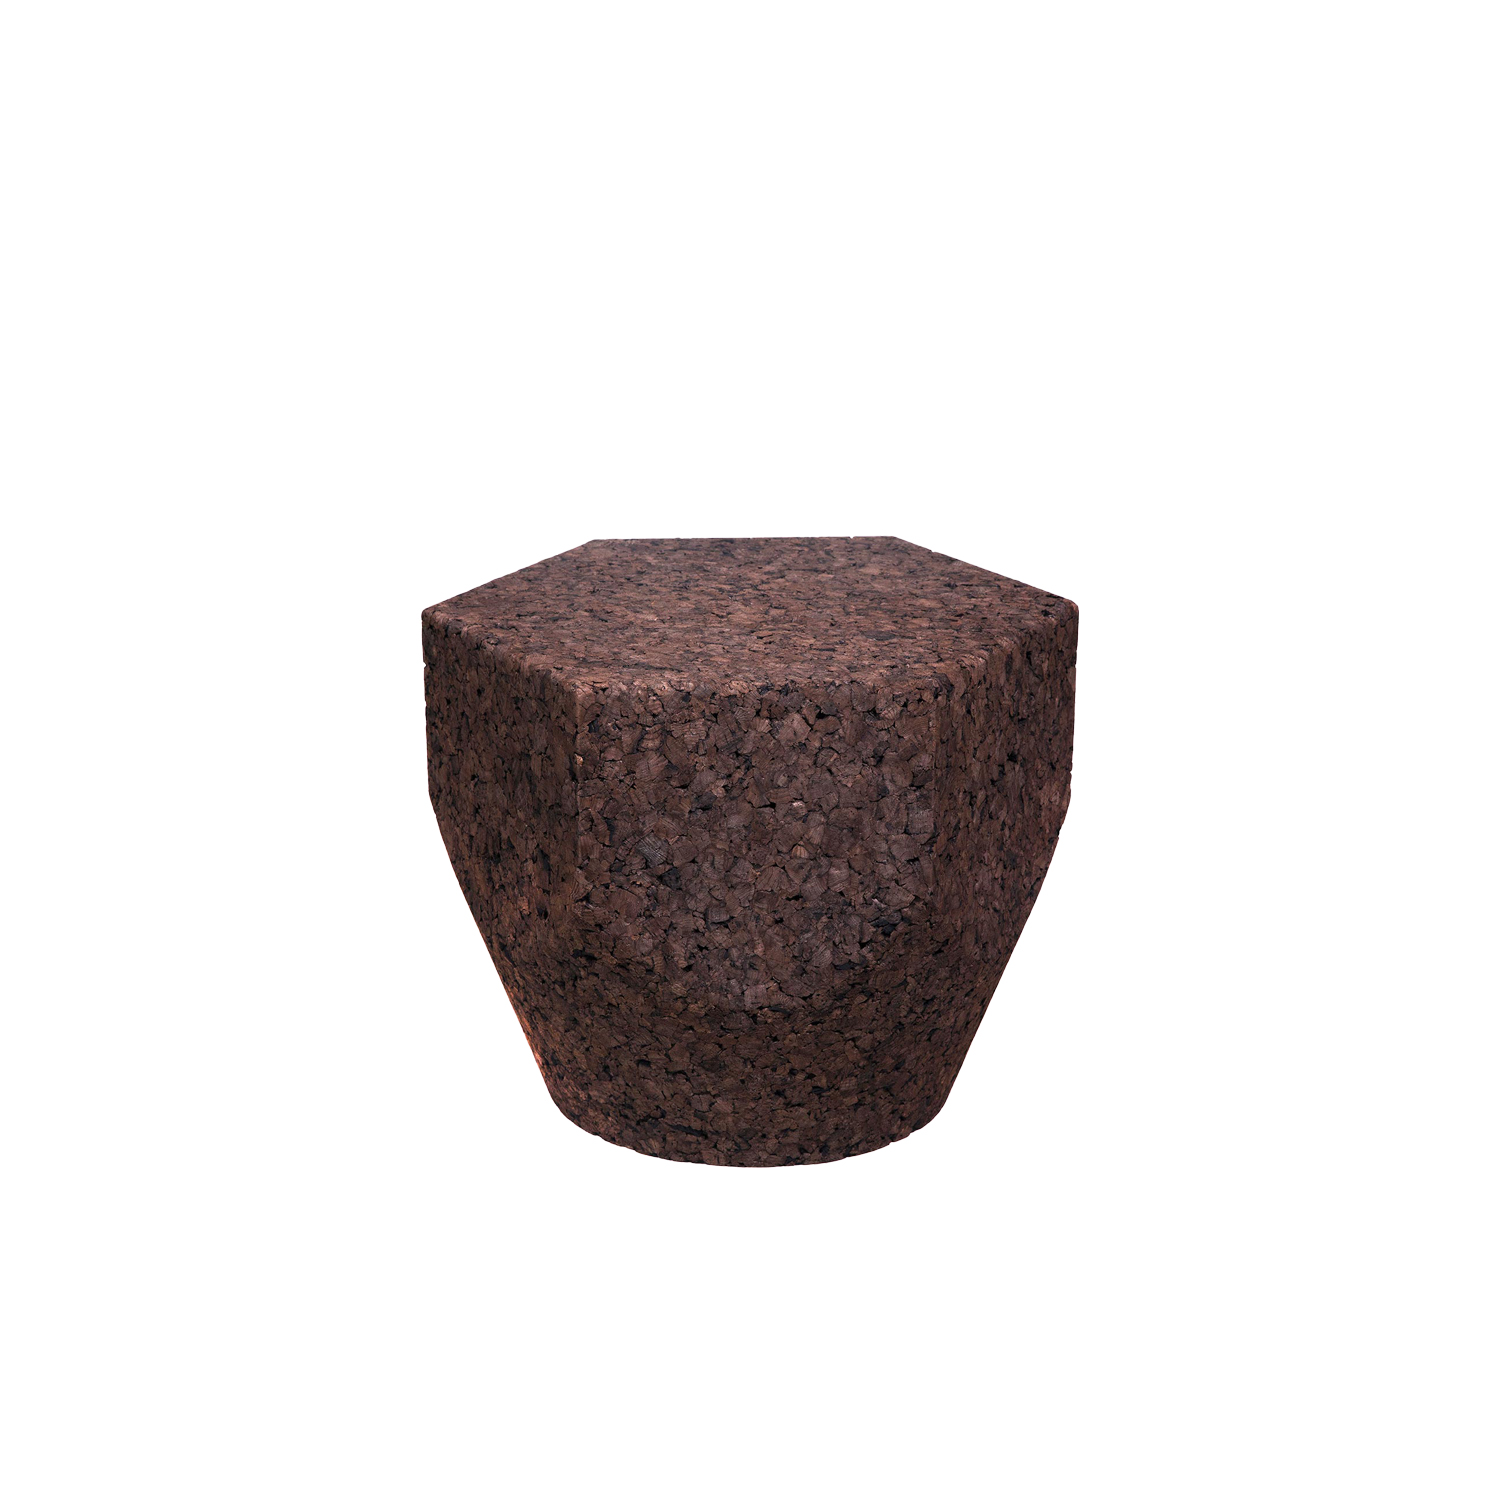 """Pencil 400/500/600 Low Tables - It is only used cork of the branches (falca) for the manufacture of cork granules. These are block clusters in autoclave, being 100% natural process, without use of additives. Technology, developed by Sofalca, consists of injecting water vapour through the pallets that will expand and agglutinate with the resins of the cork itself. This """"cooking"""" gives also dark colour to the agglomerated cork, like chocolate. In the production of steam I used biomass, obtained on milling and cleaning the falca, what makes it truly ecological production and without waste, 95% energy self-sufficient. As a super-material, cork offers so many advantages, because in addition to its excellent thermic, acoustic insulation and anti vibration characteristic, it is also a CO2 sink playing a key-role in the environment. 